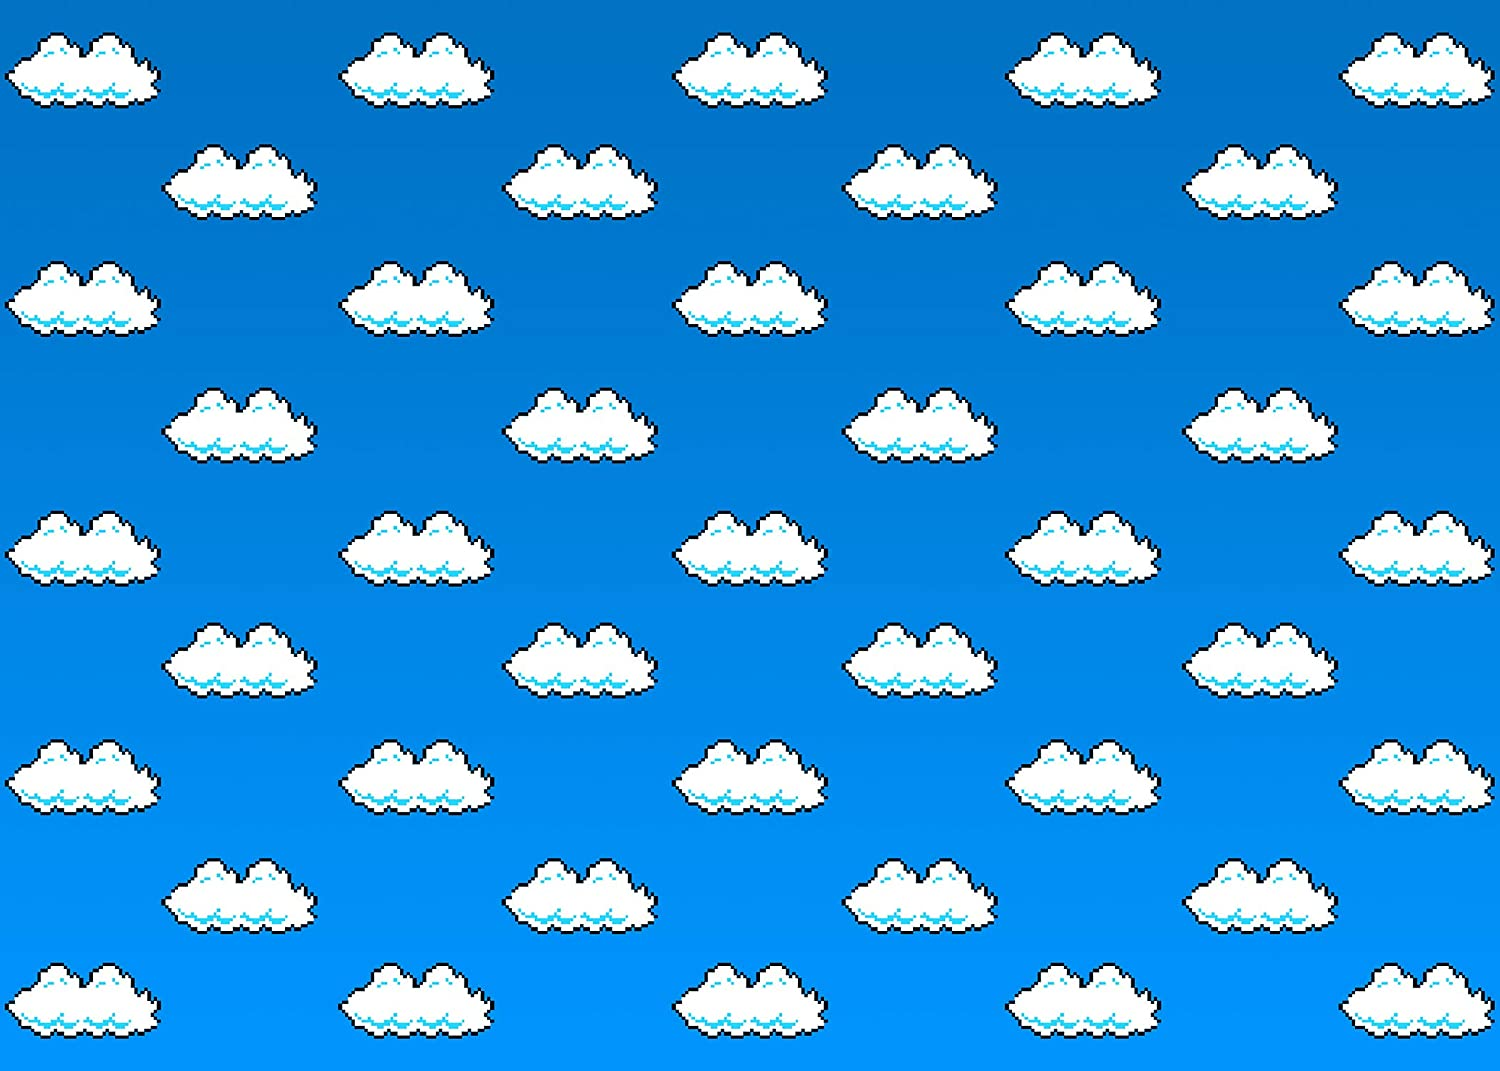 Amazon Com Gesen Super Mario Bros Backdrop For Party 10x7ft Blue Sky White Clouds Photo Background For Children Birthday Themed Party Photo Booth Screen